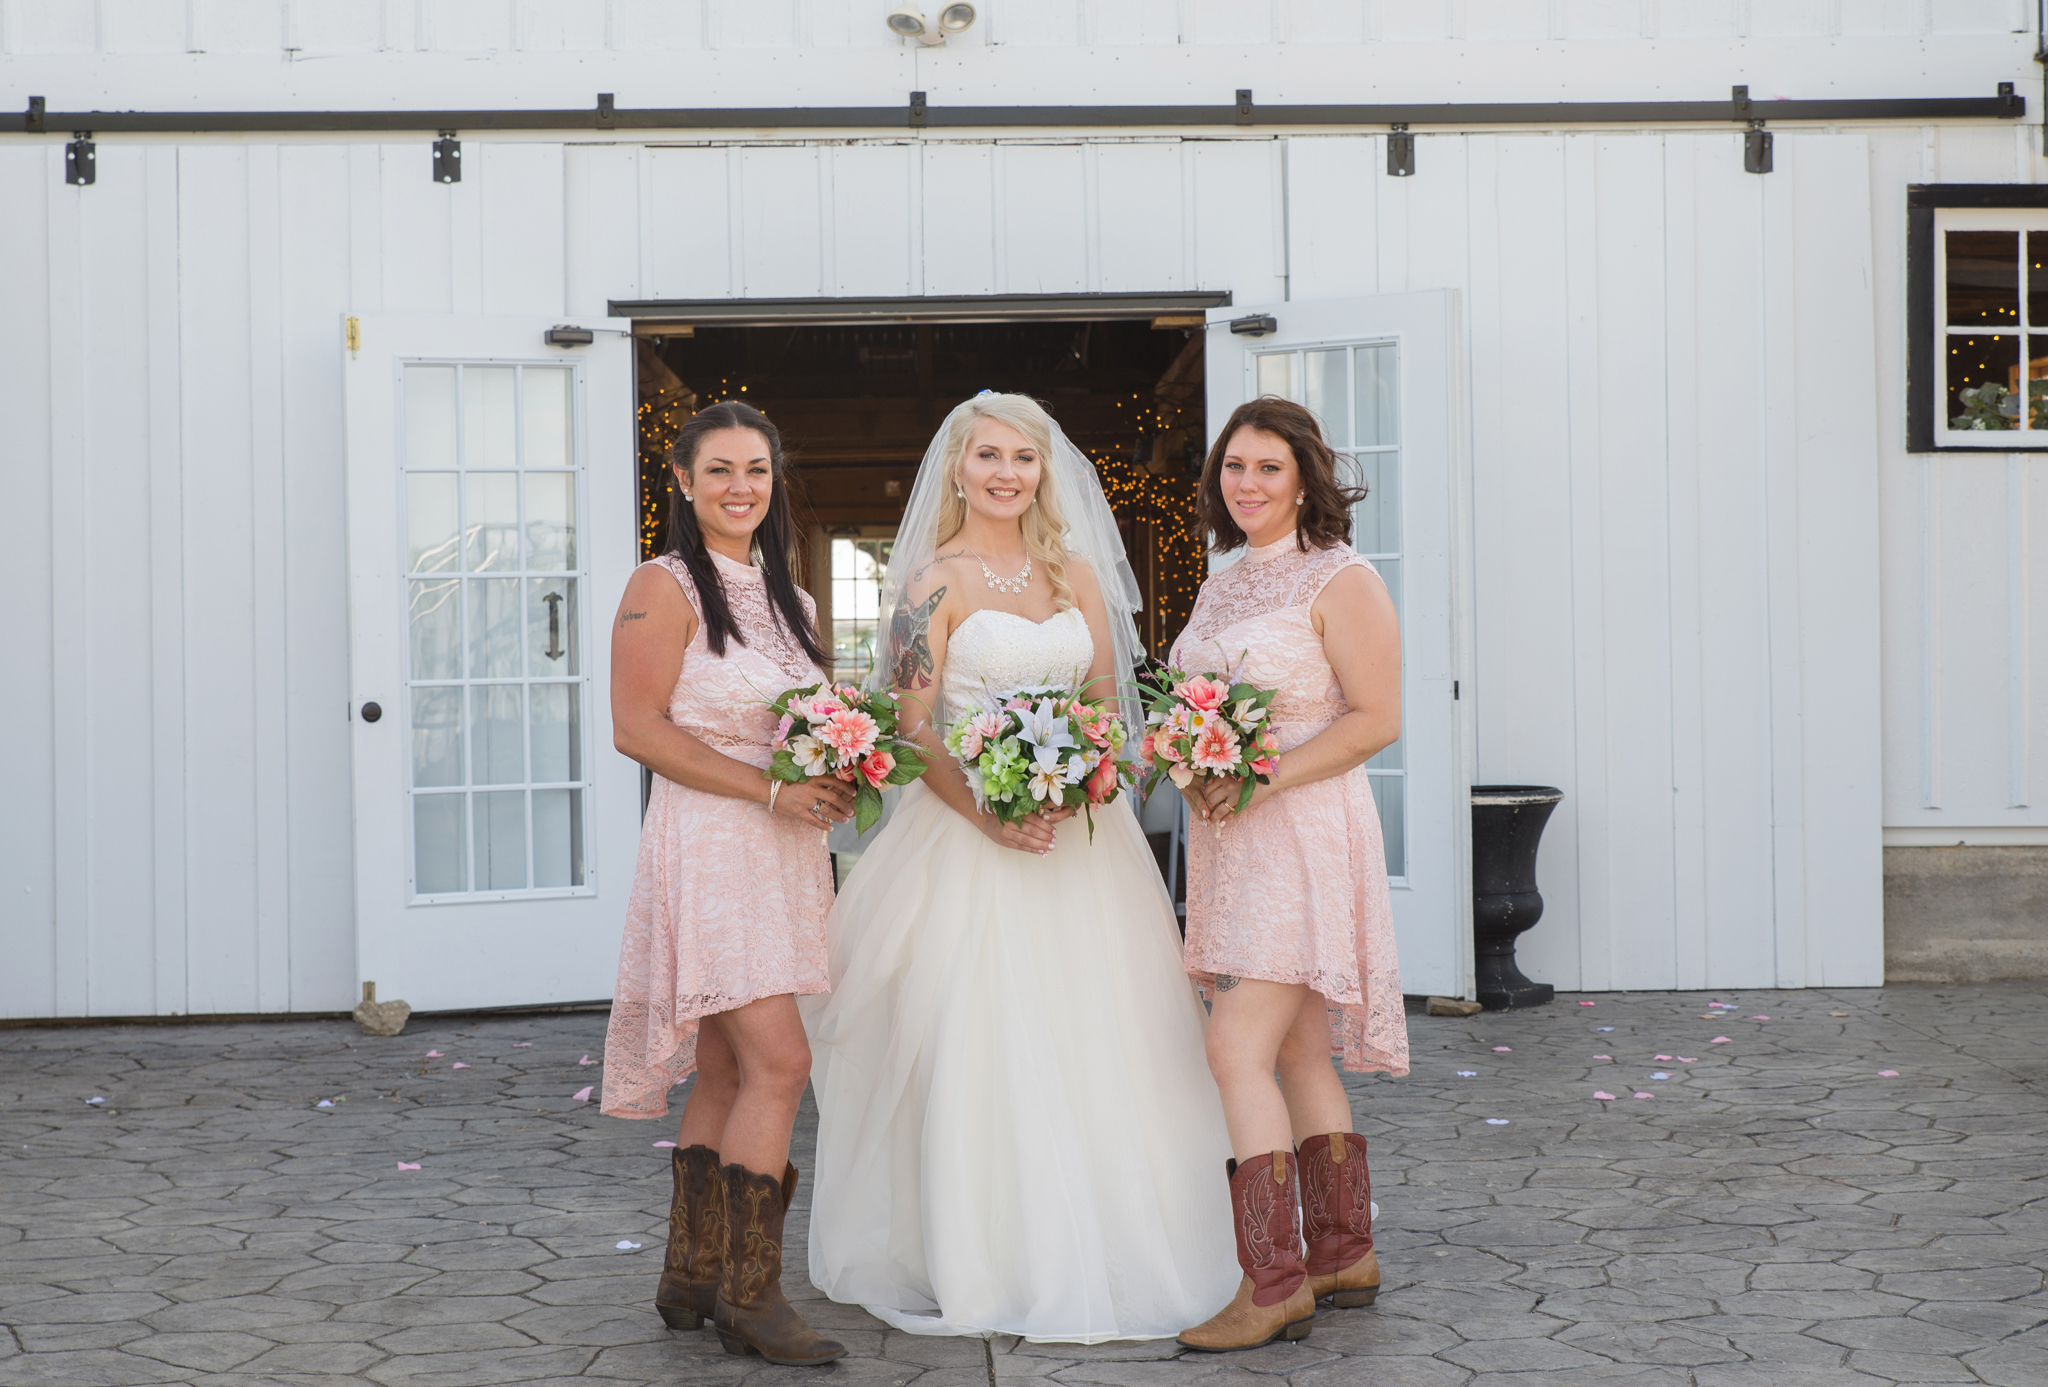 Josephina Event Venue, barn wedding, outdoor wedding, Kentucky wedding, Kentucky, Louisville, Dry Ridge, Somerset, Campton, Ashland, West Chester, Mt Sterling, Winchester, Morehead